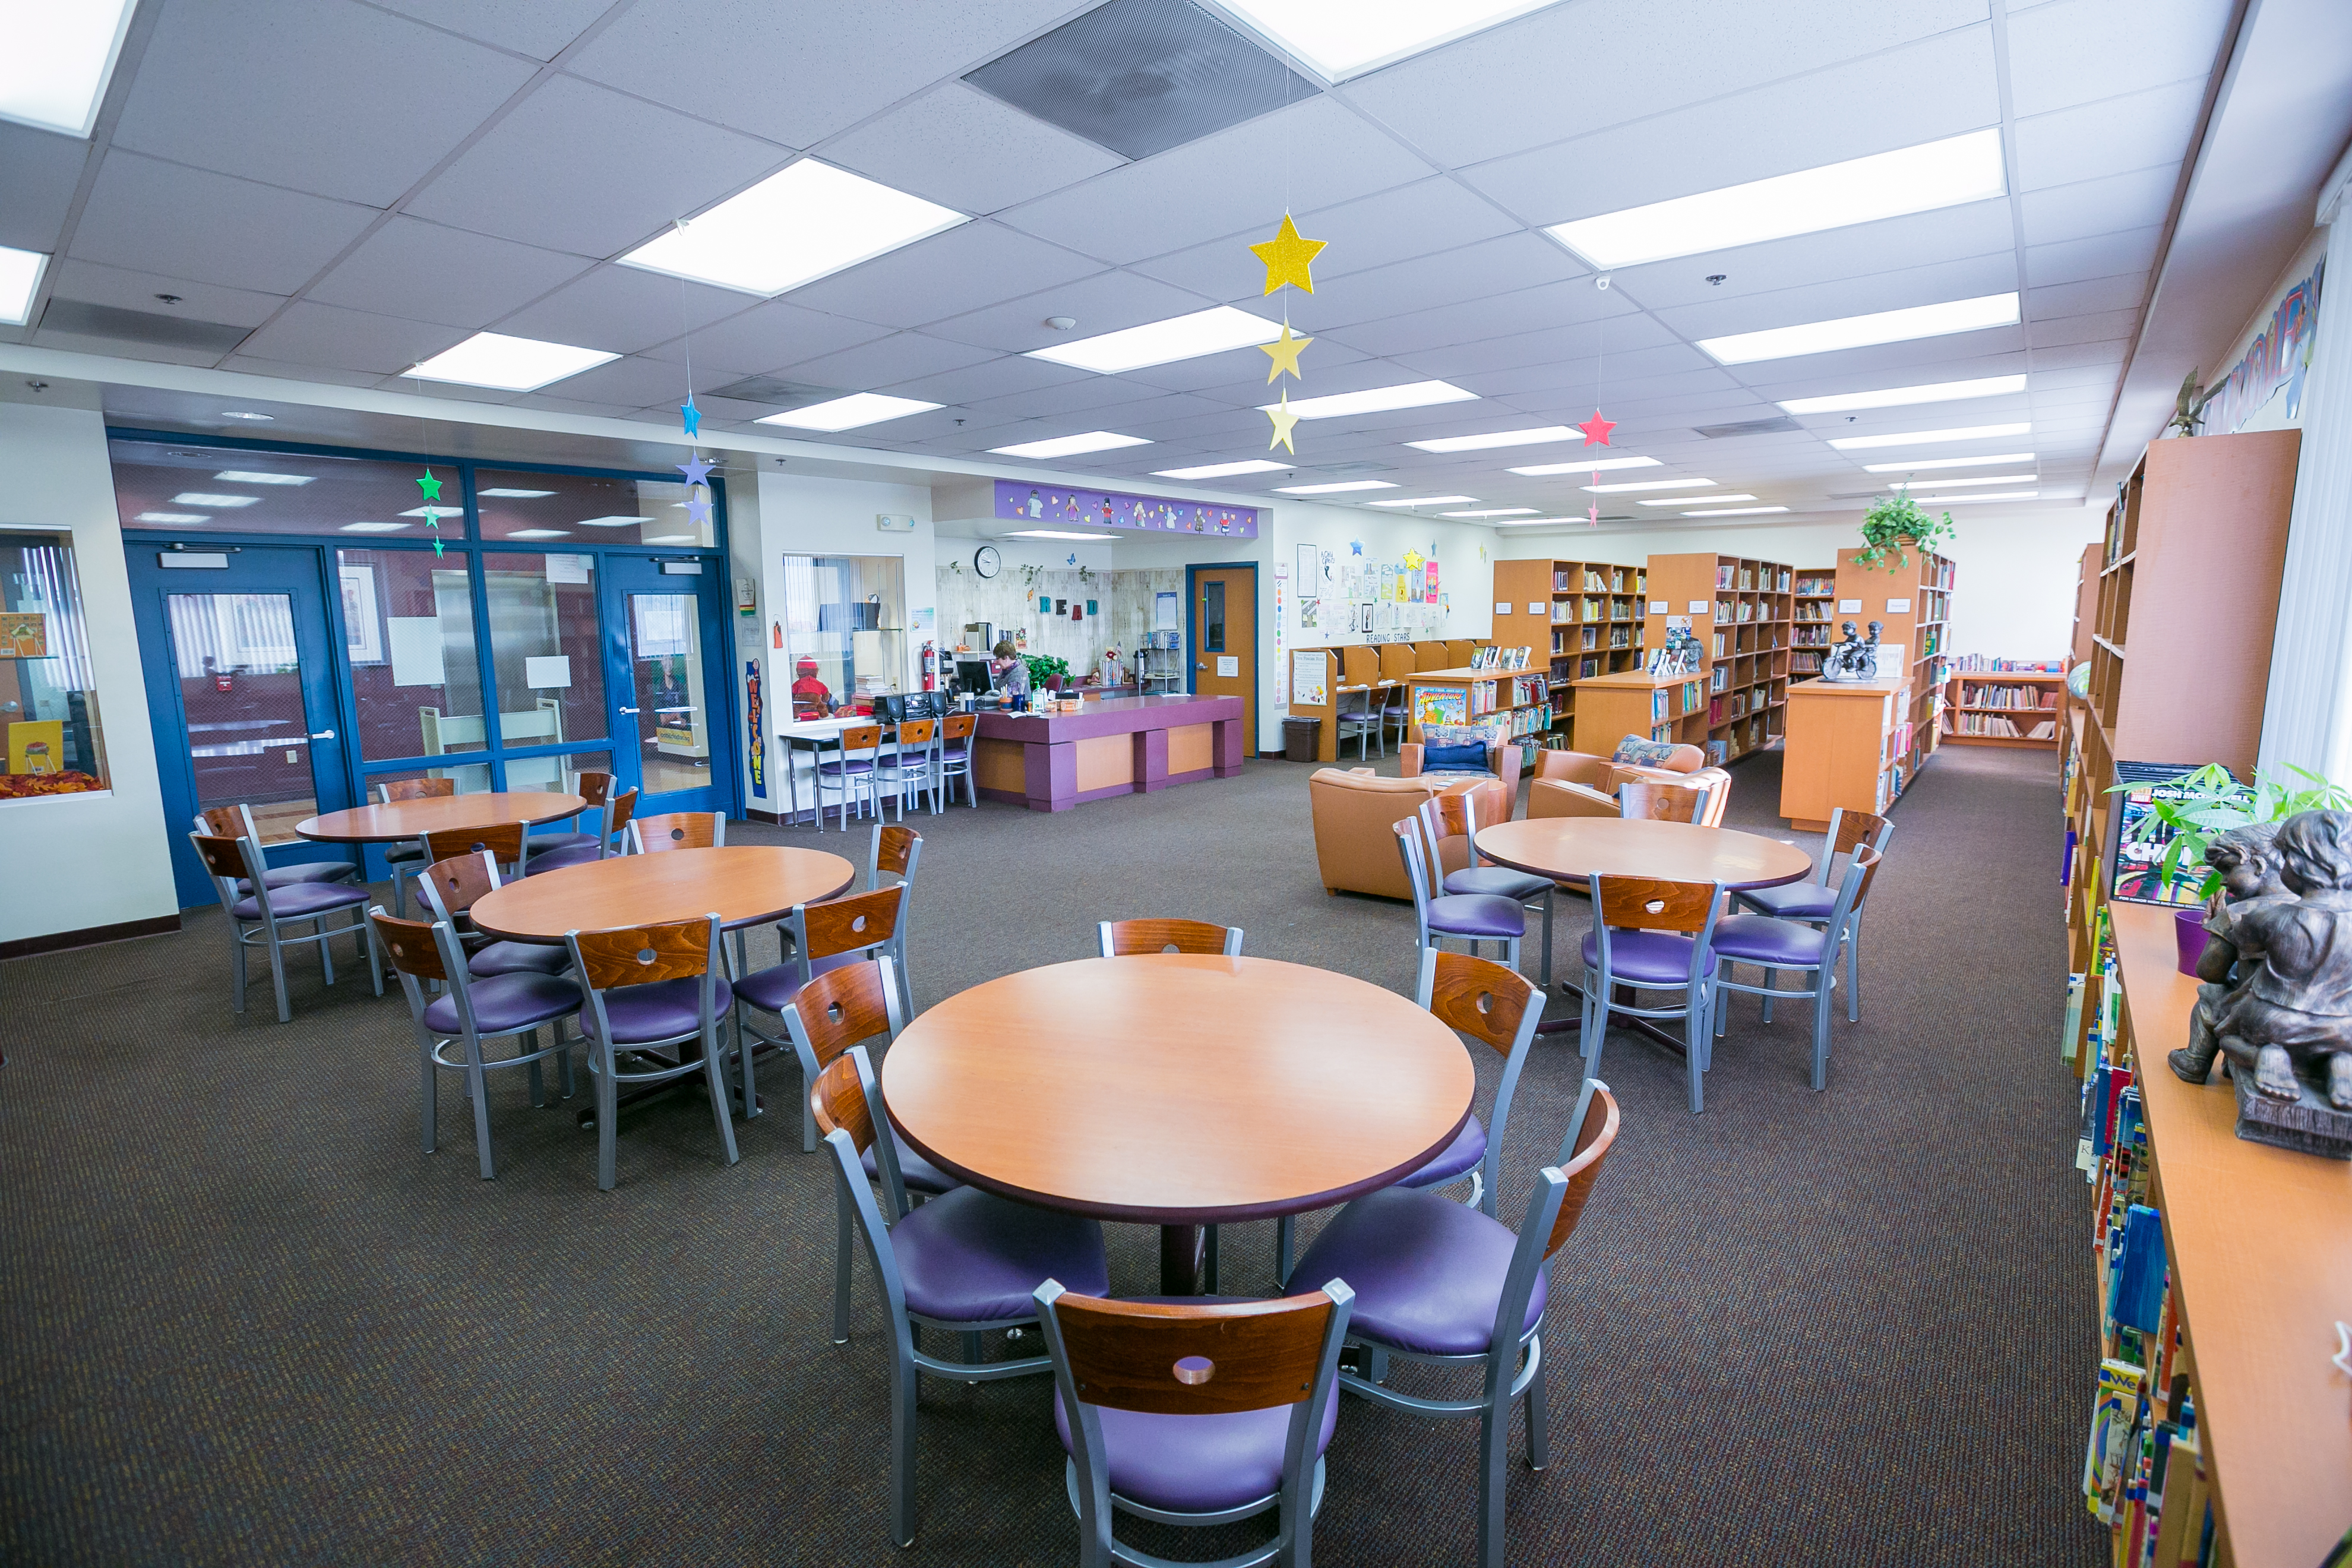 Watch Videos blacked out at schools and libraries video